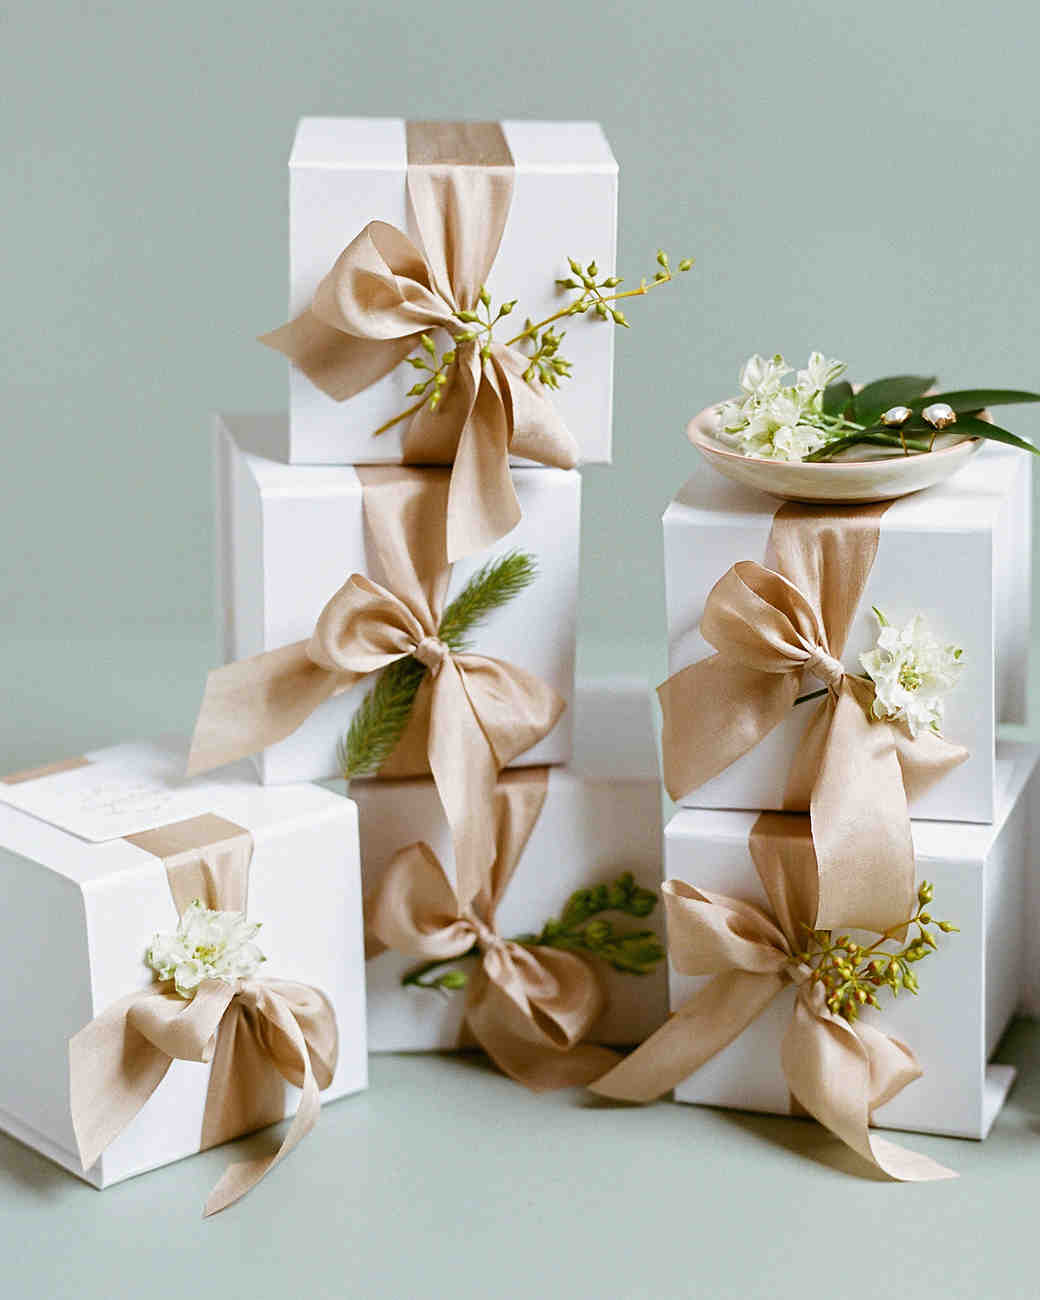 Small Gift For Wedding: 34 Festive Fall Wedding Favor Ideas